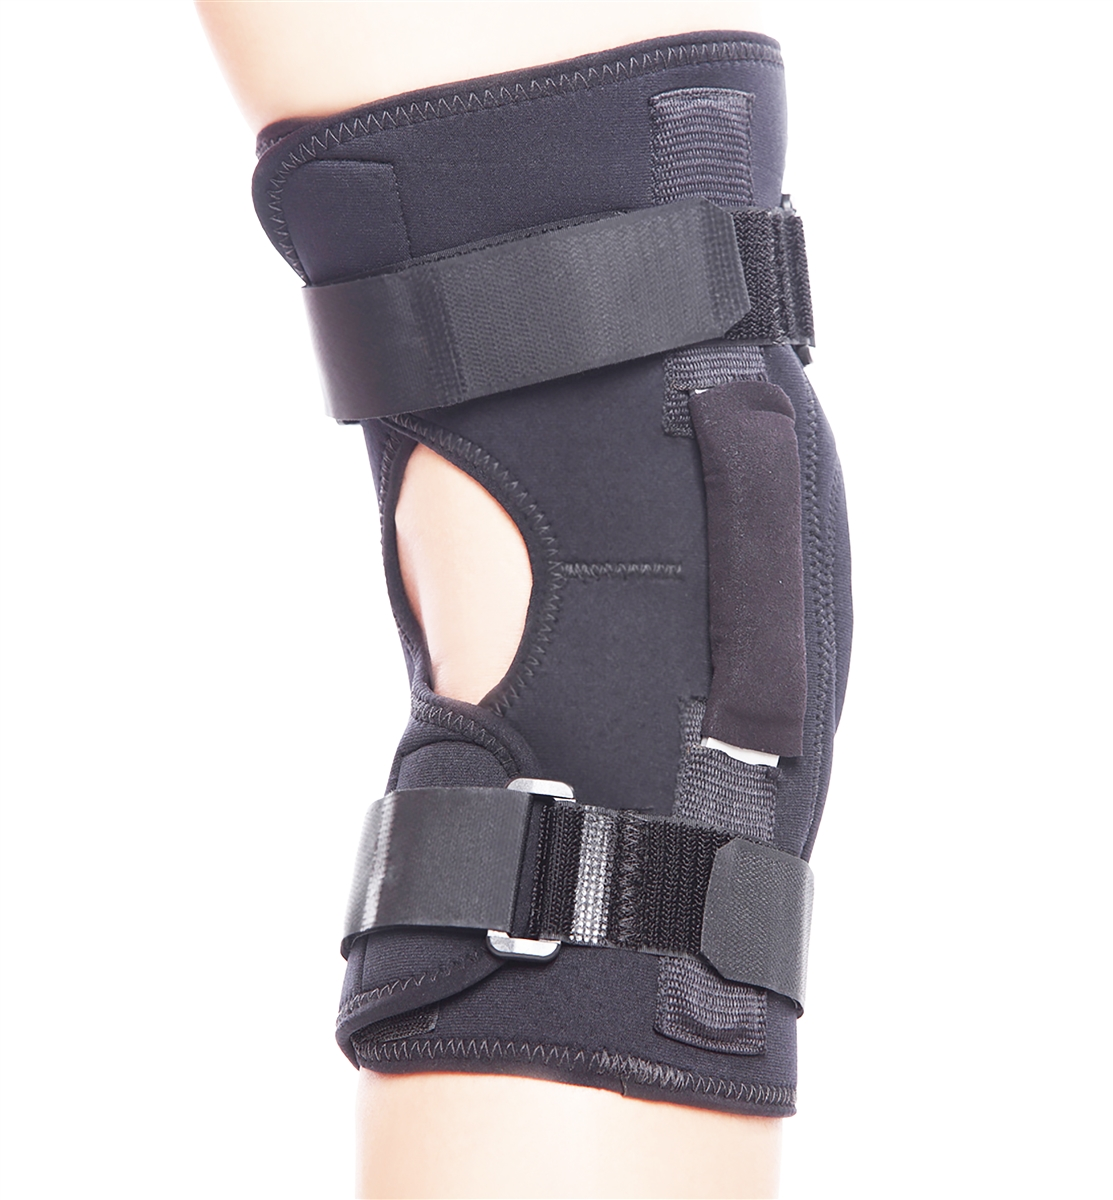 26fdf986af Range of Motion (ROM) Hinged Knee Wrap